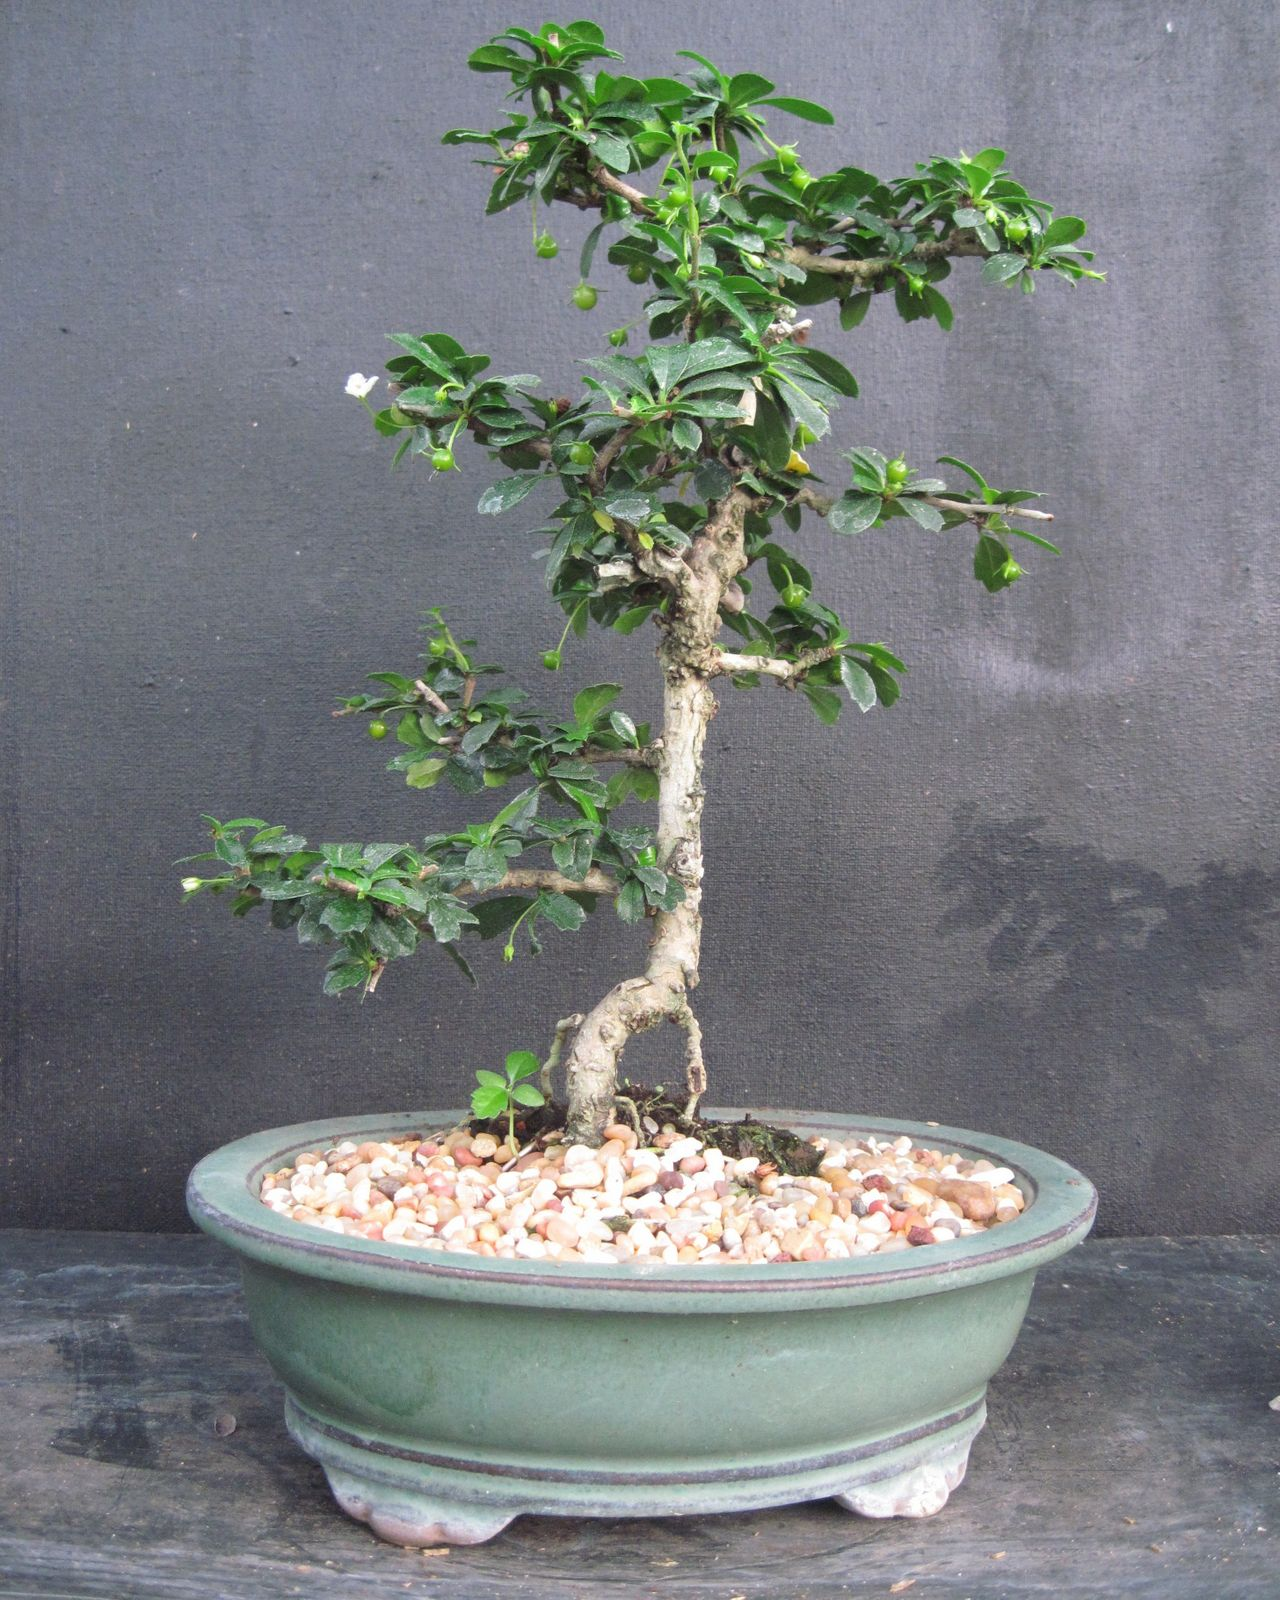 Bonsai Beginnings Fujian Tea Fukien Tea Philippine Tea Poor